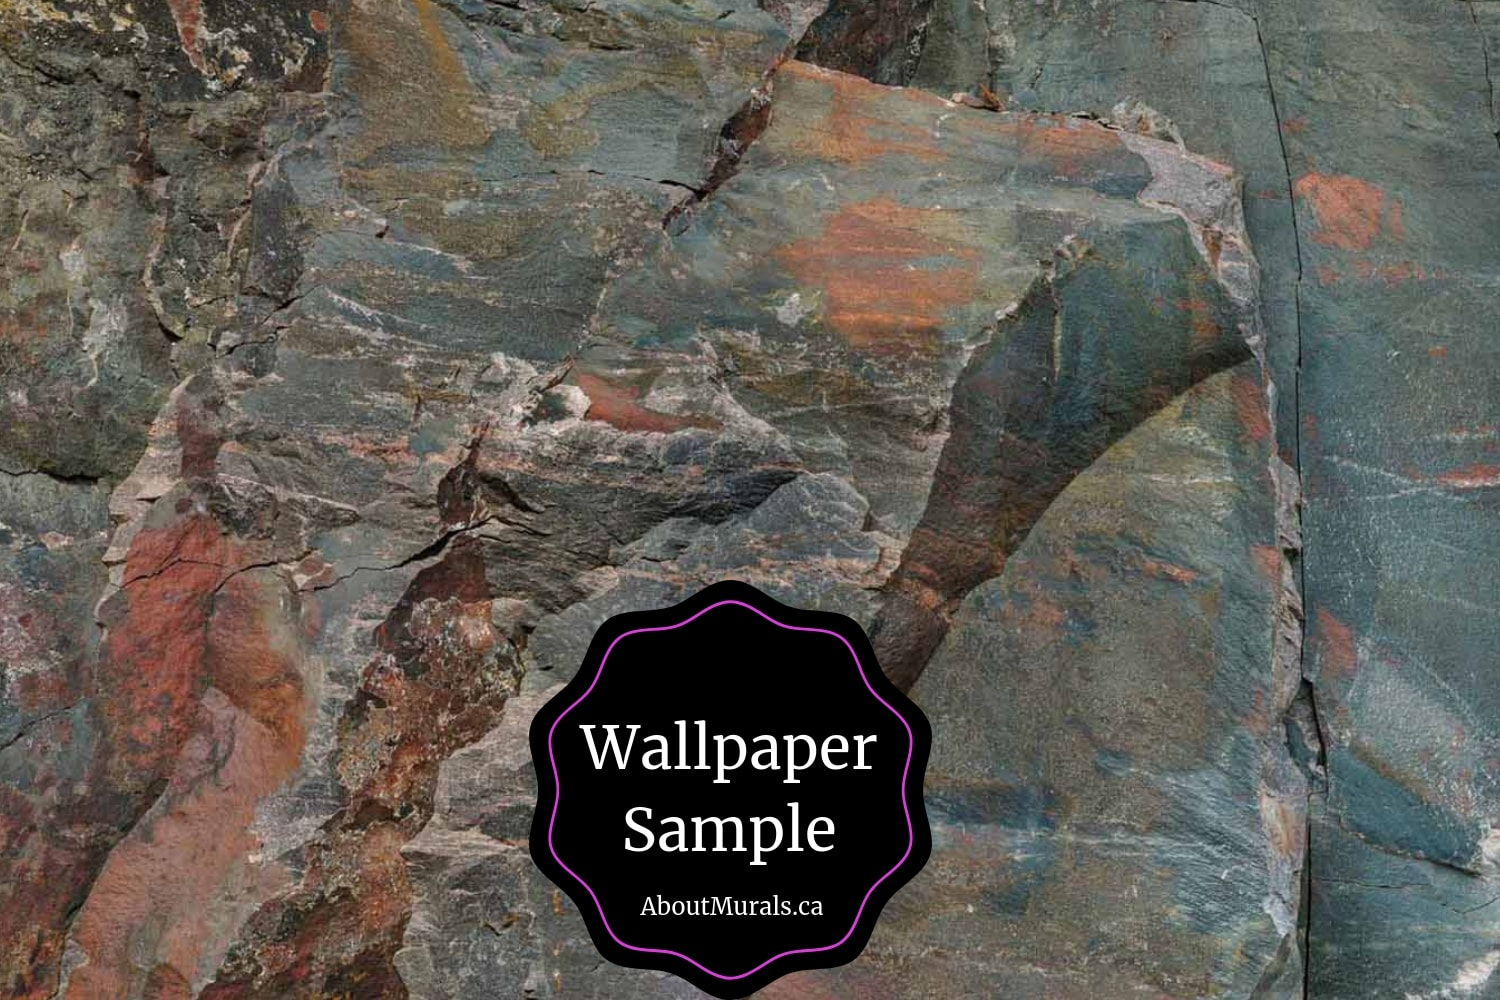 A wallpaper sample of Canadian Shield Rock Face sold by AboutMurals.ca